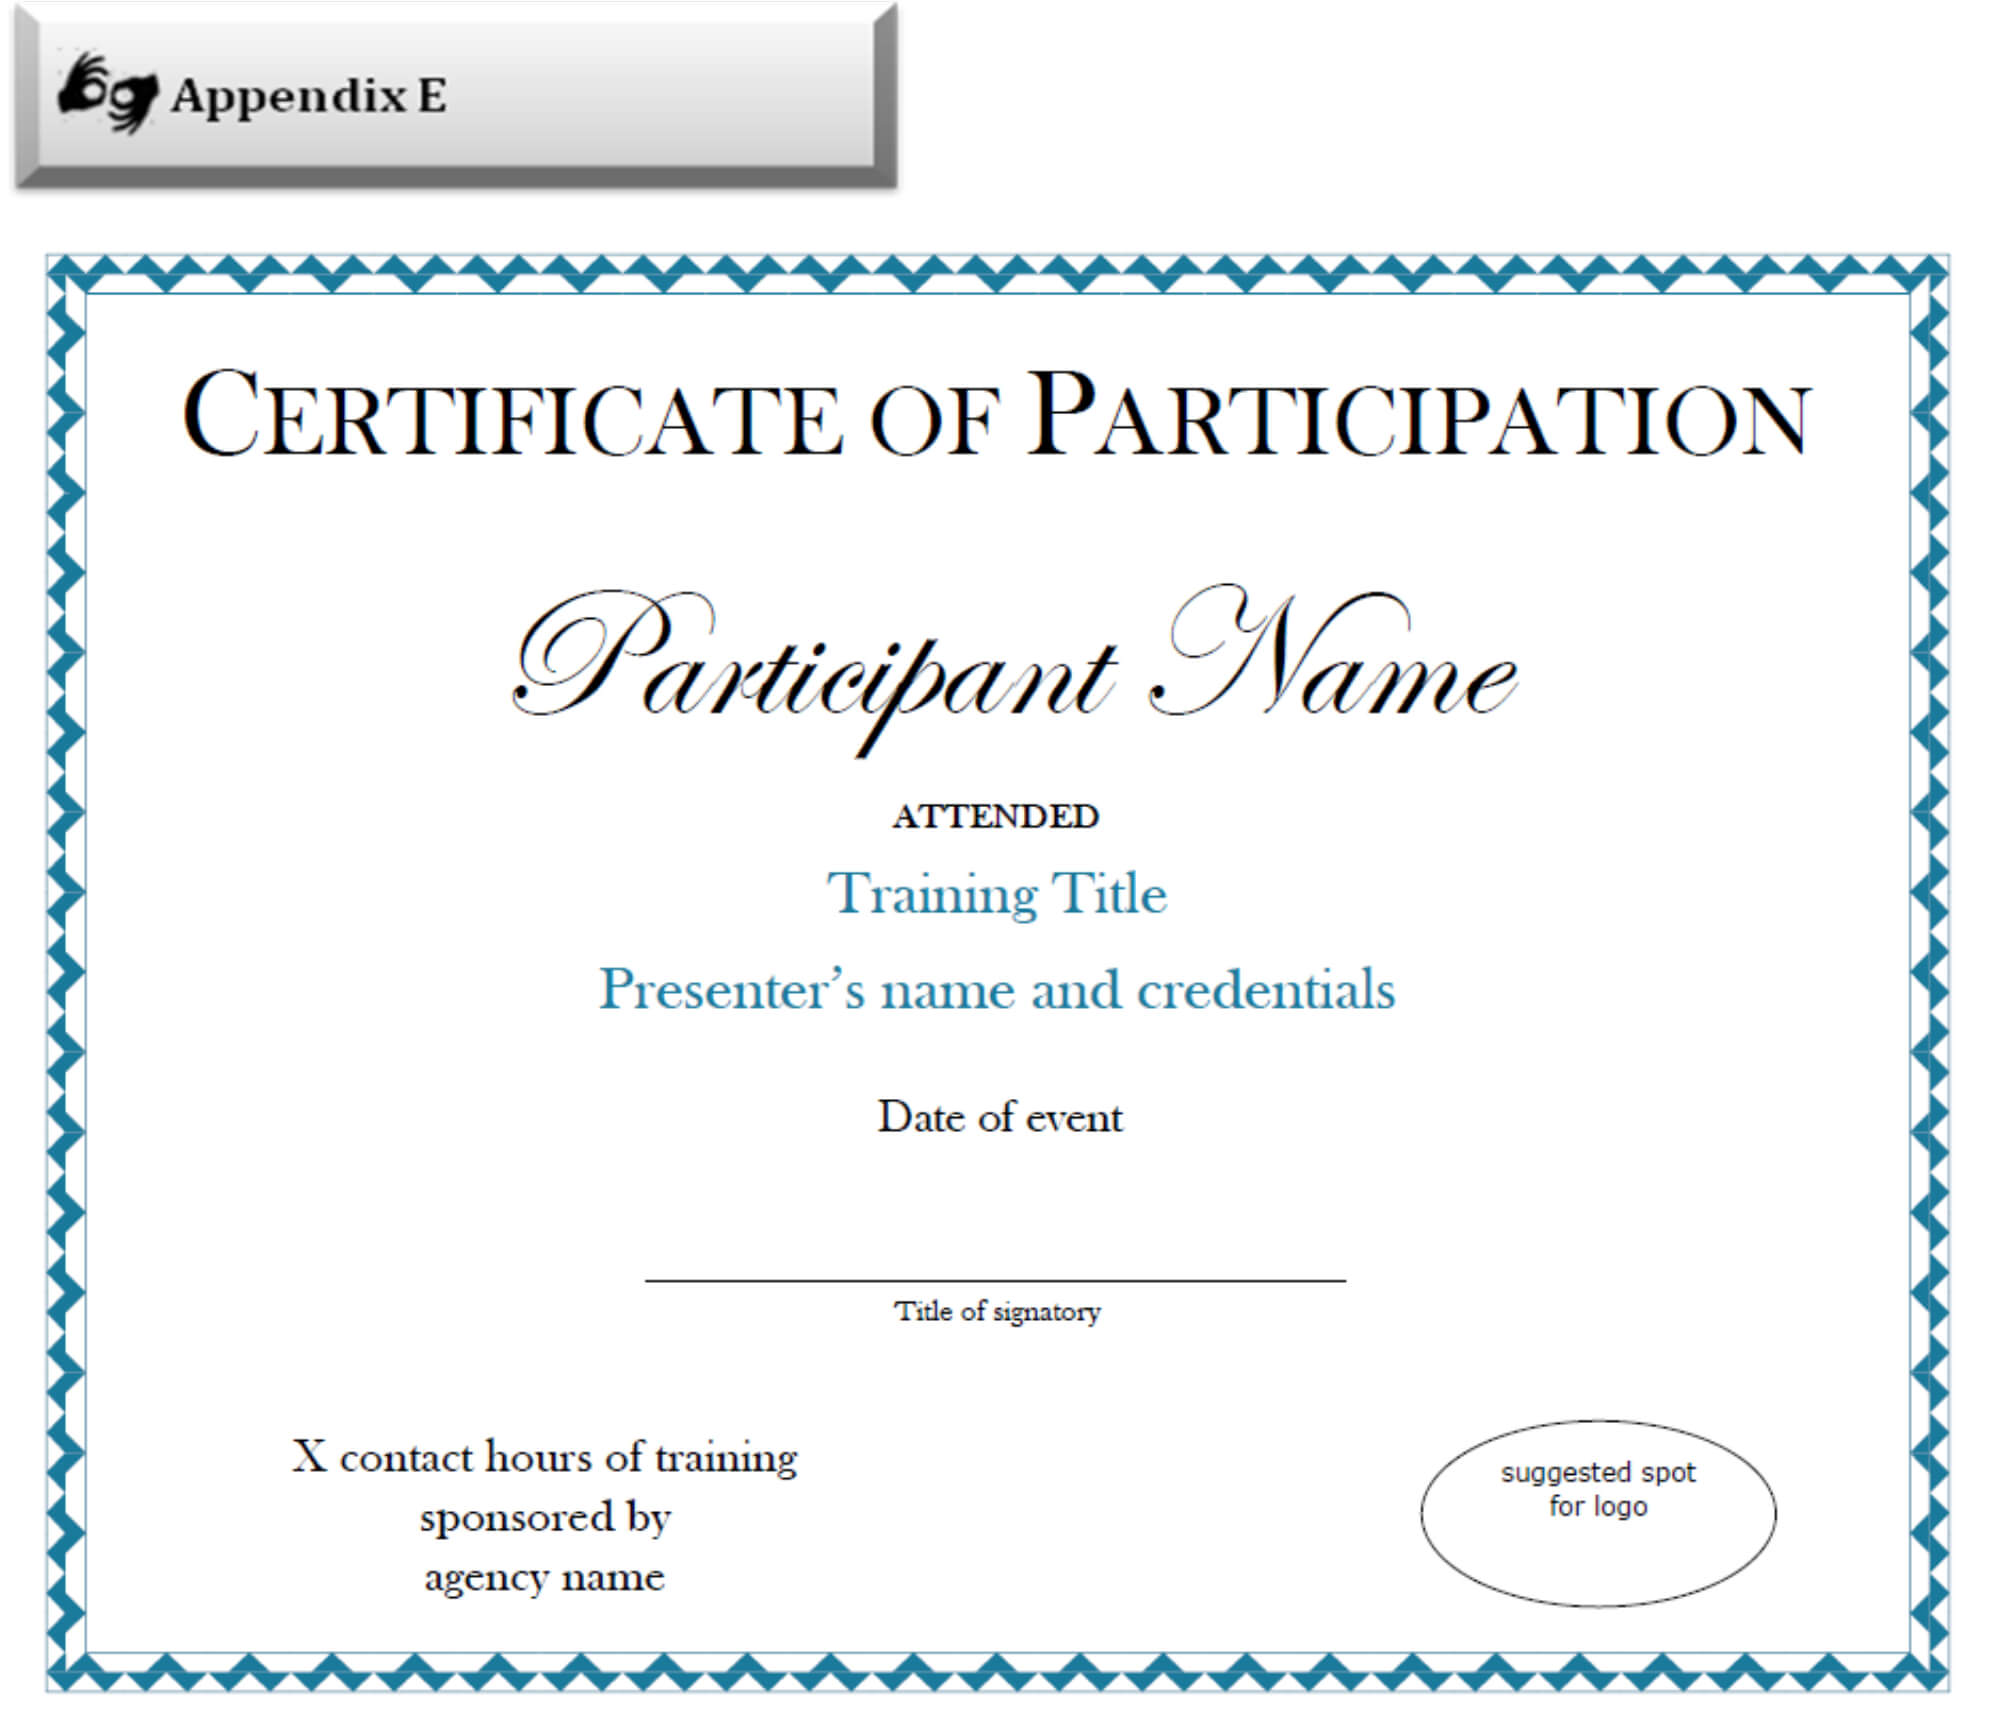 Certificate Of Participation Sample Free Download Pertaining To Certificate Of Participation Template Pdf